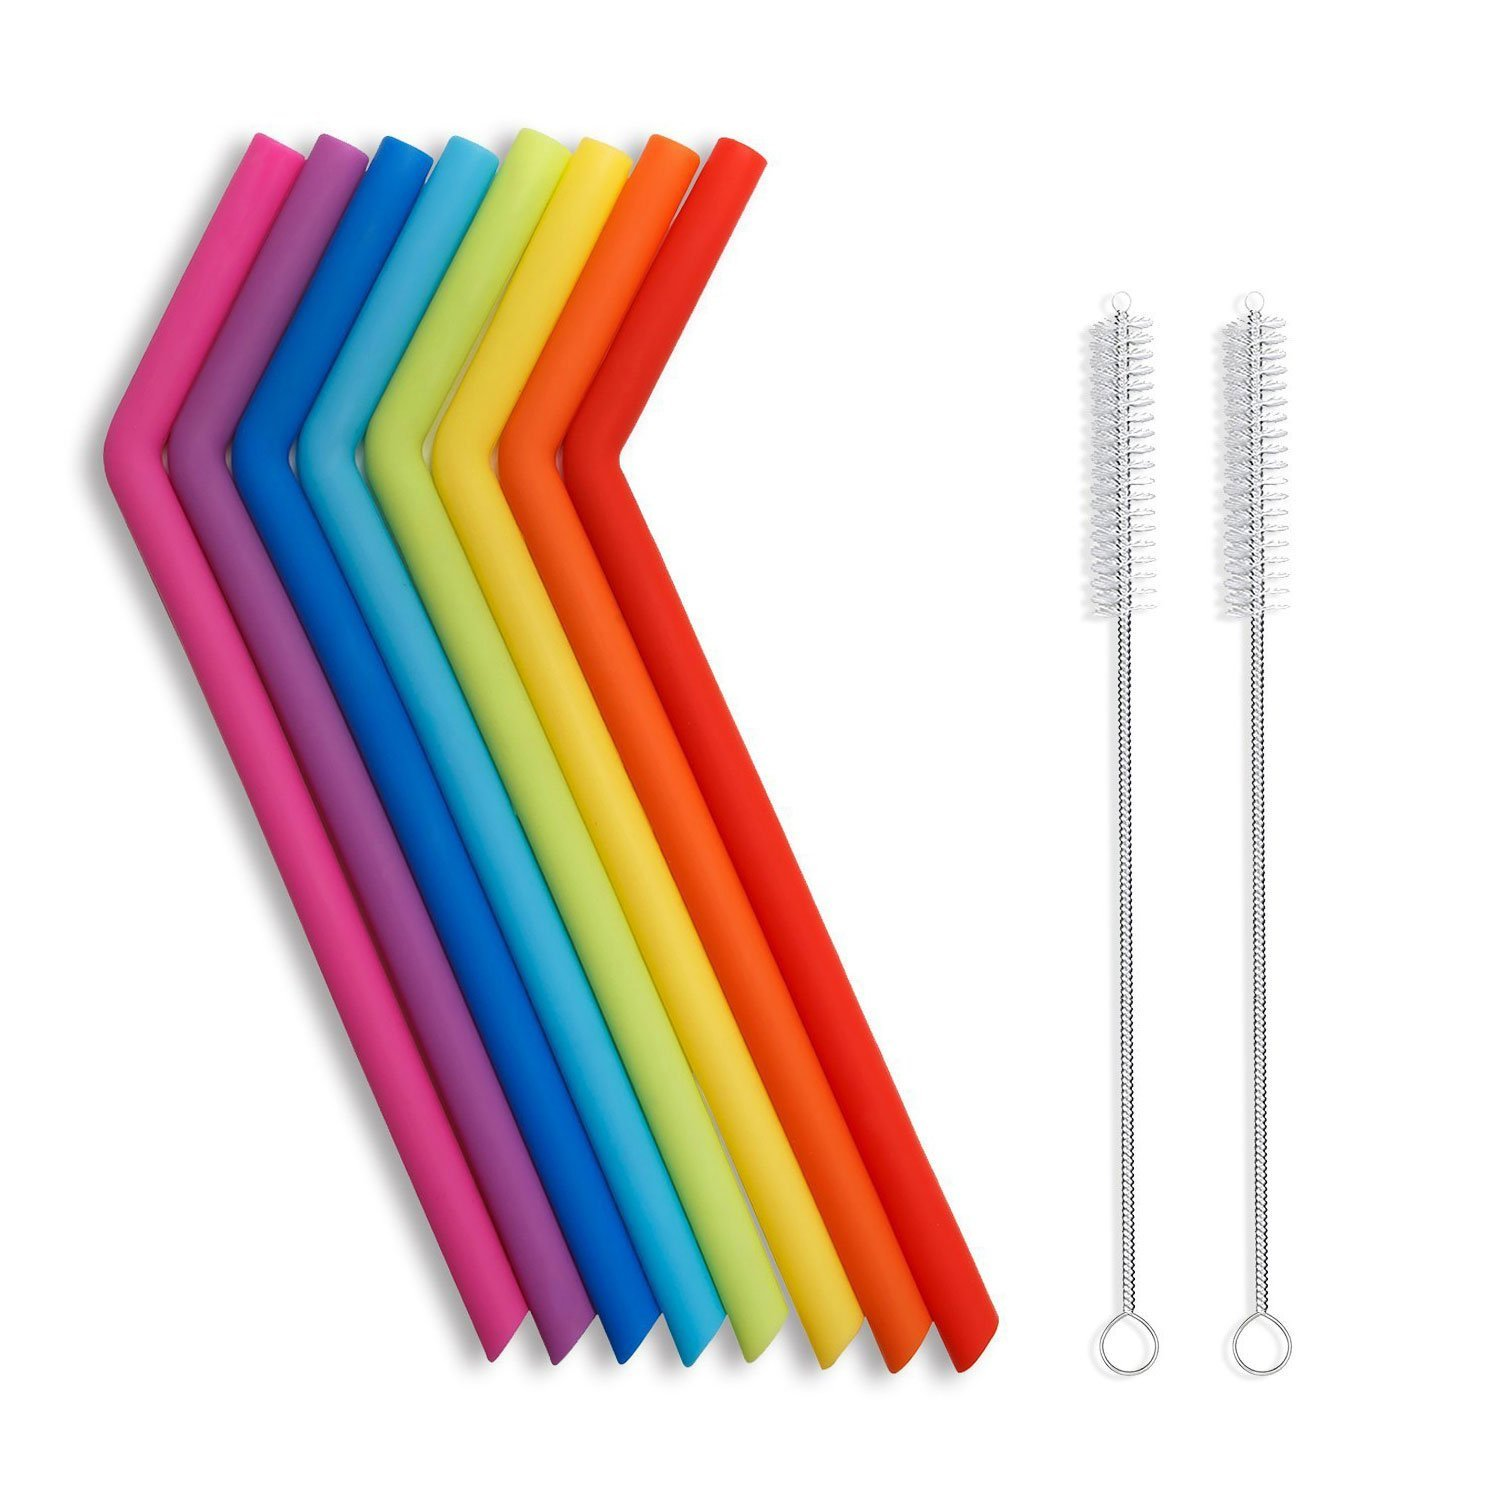 Amazon Hot sale 2018 BPA Free Reusable Drinking Straw FDA Silicone Straws 6 Packs with 2 Brushes Silicone Drinking Straw